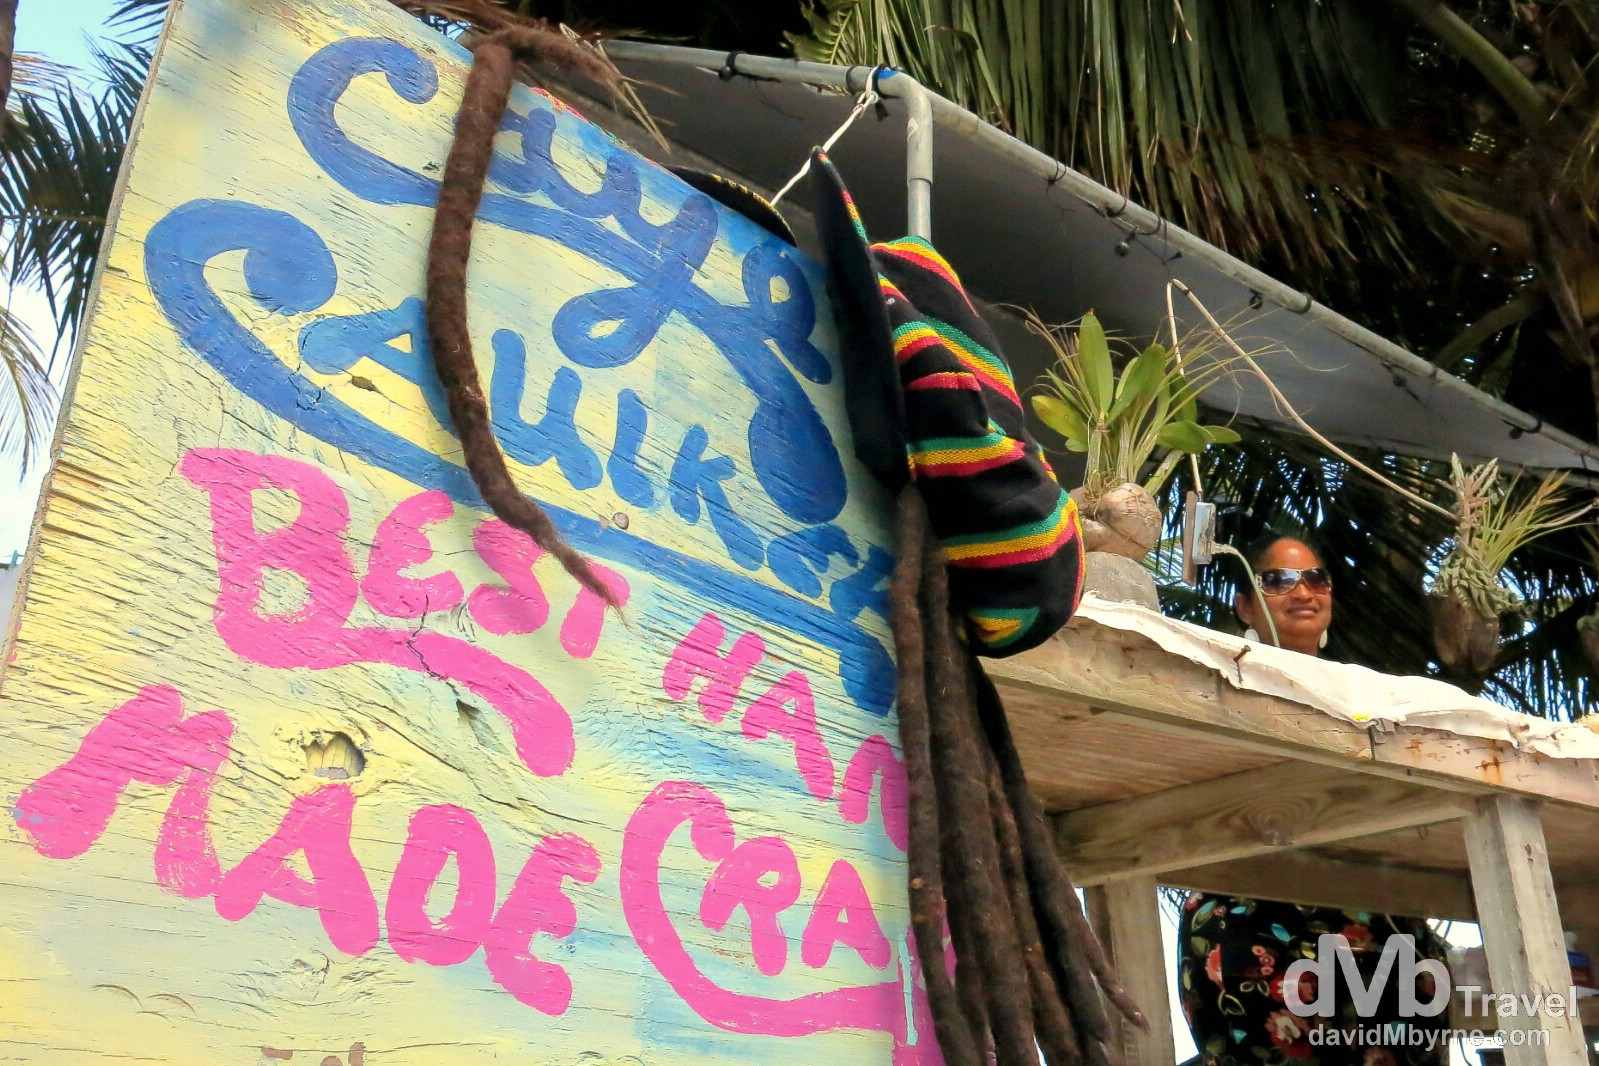 I need not have packed mine. Ready-made Bob Marley hat & dreds. Caye Caulker, Belize. May 13th 2013.